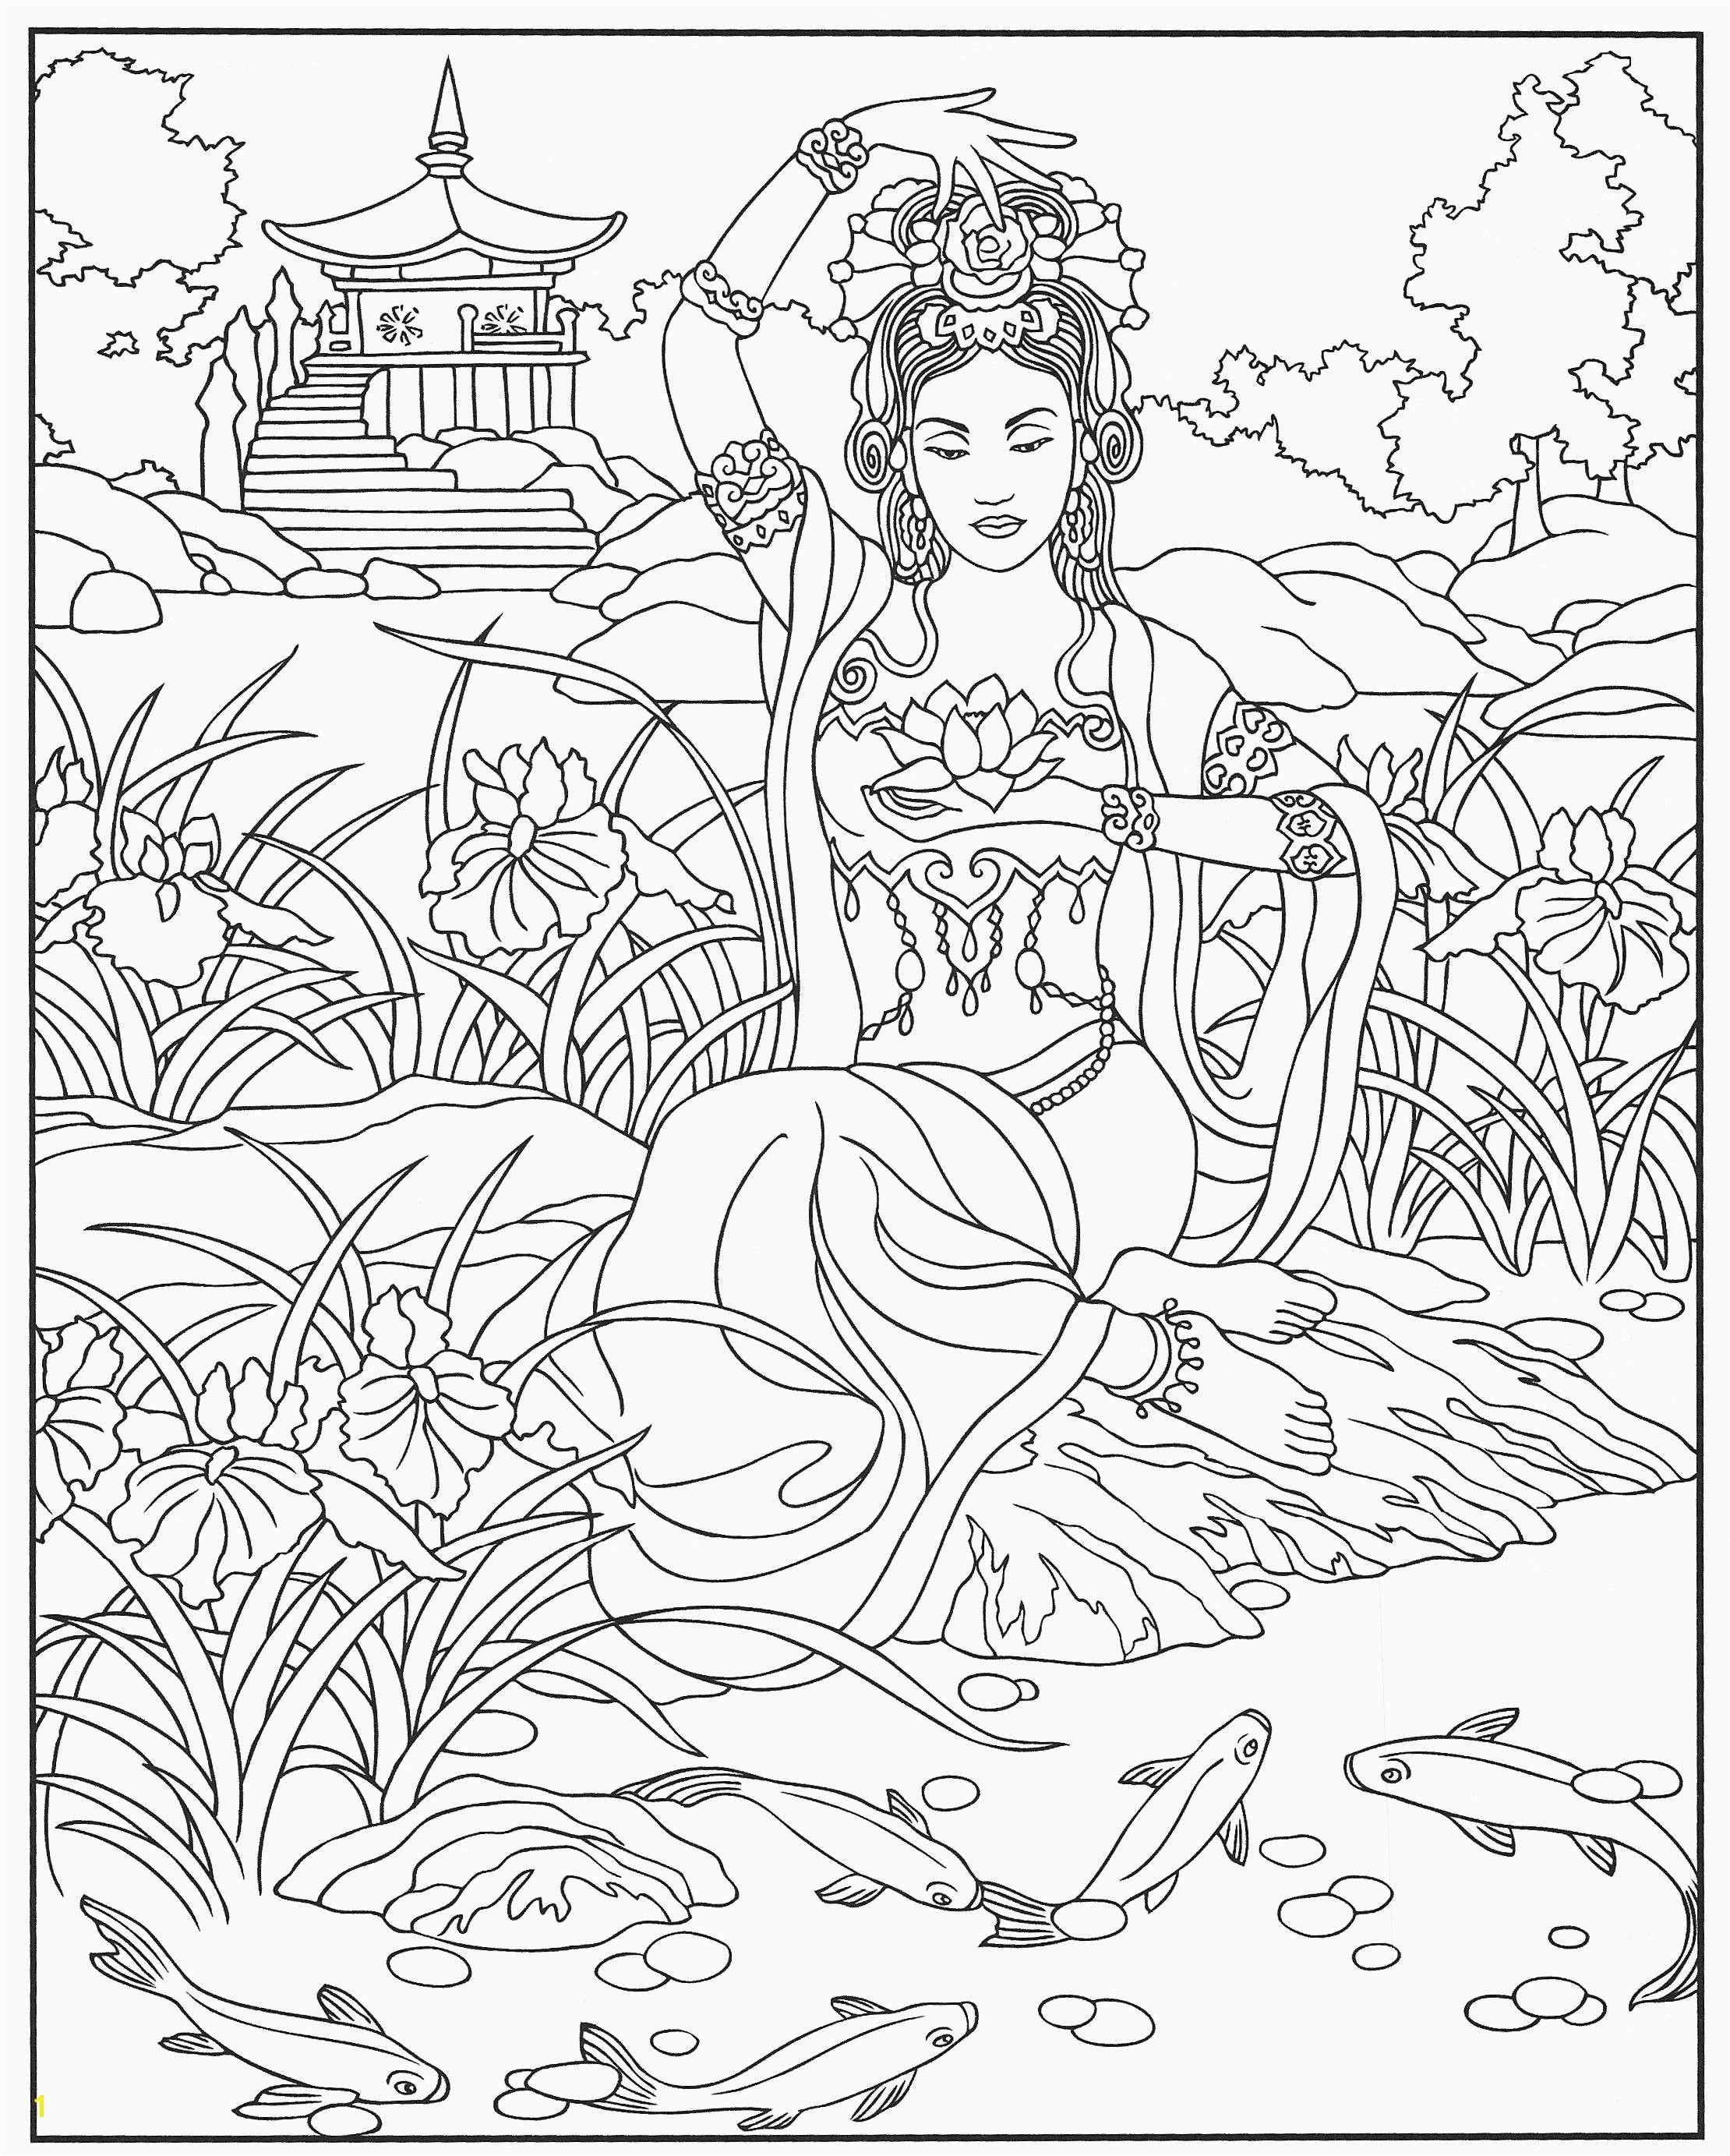 Utv Coloring Pages Merry Christmas Grandma Coloring Pages